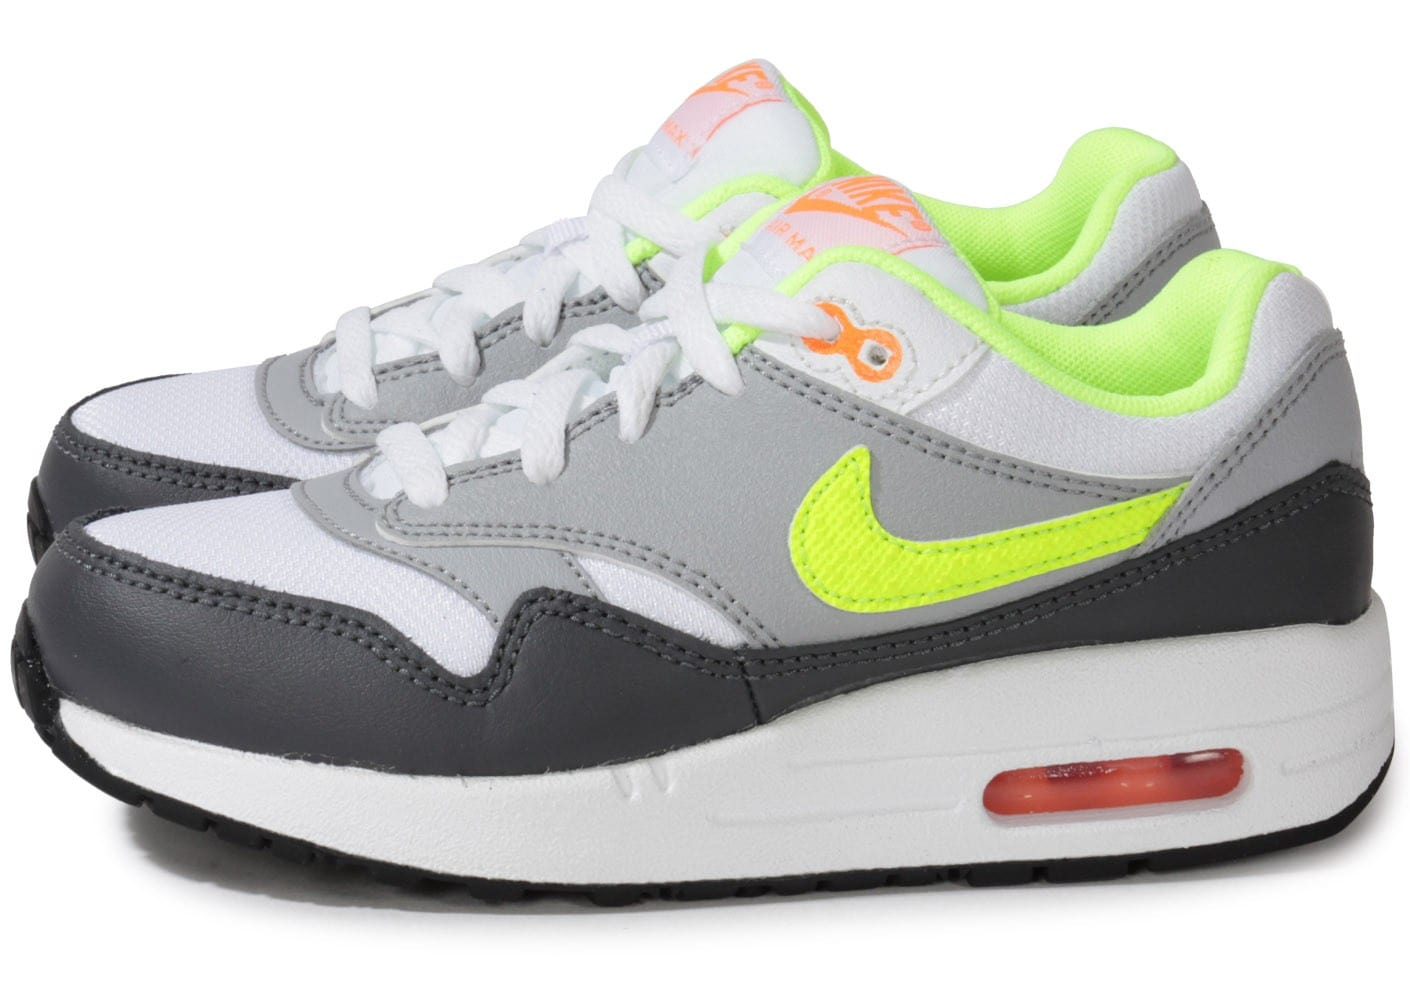 nike air max 1 enfant blanche orange volt chaussures chaussures chausport. Black Bedroom Furniture Sets. Home Design Ideas